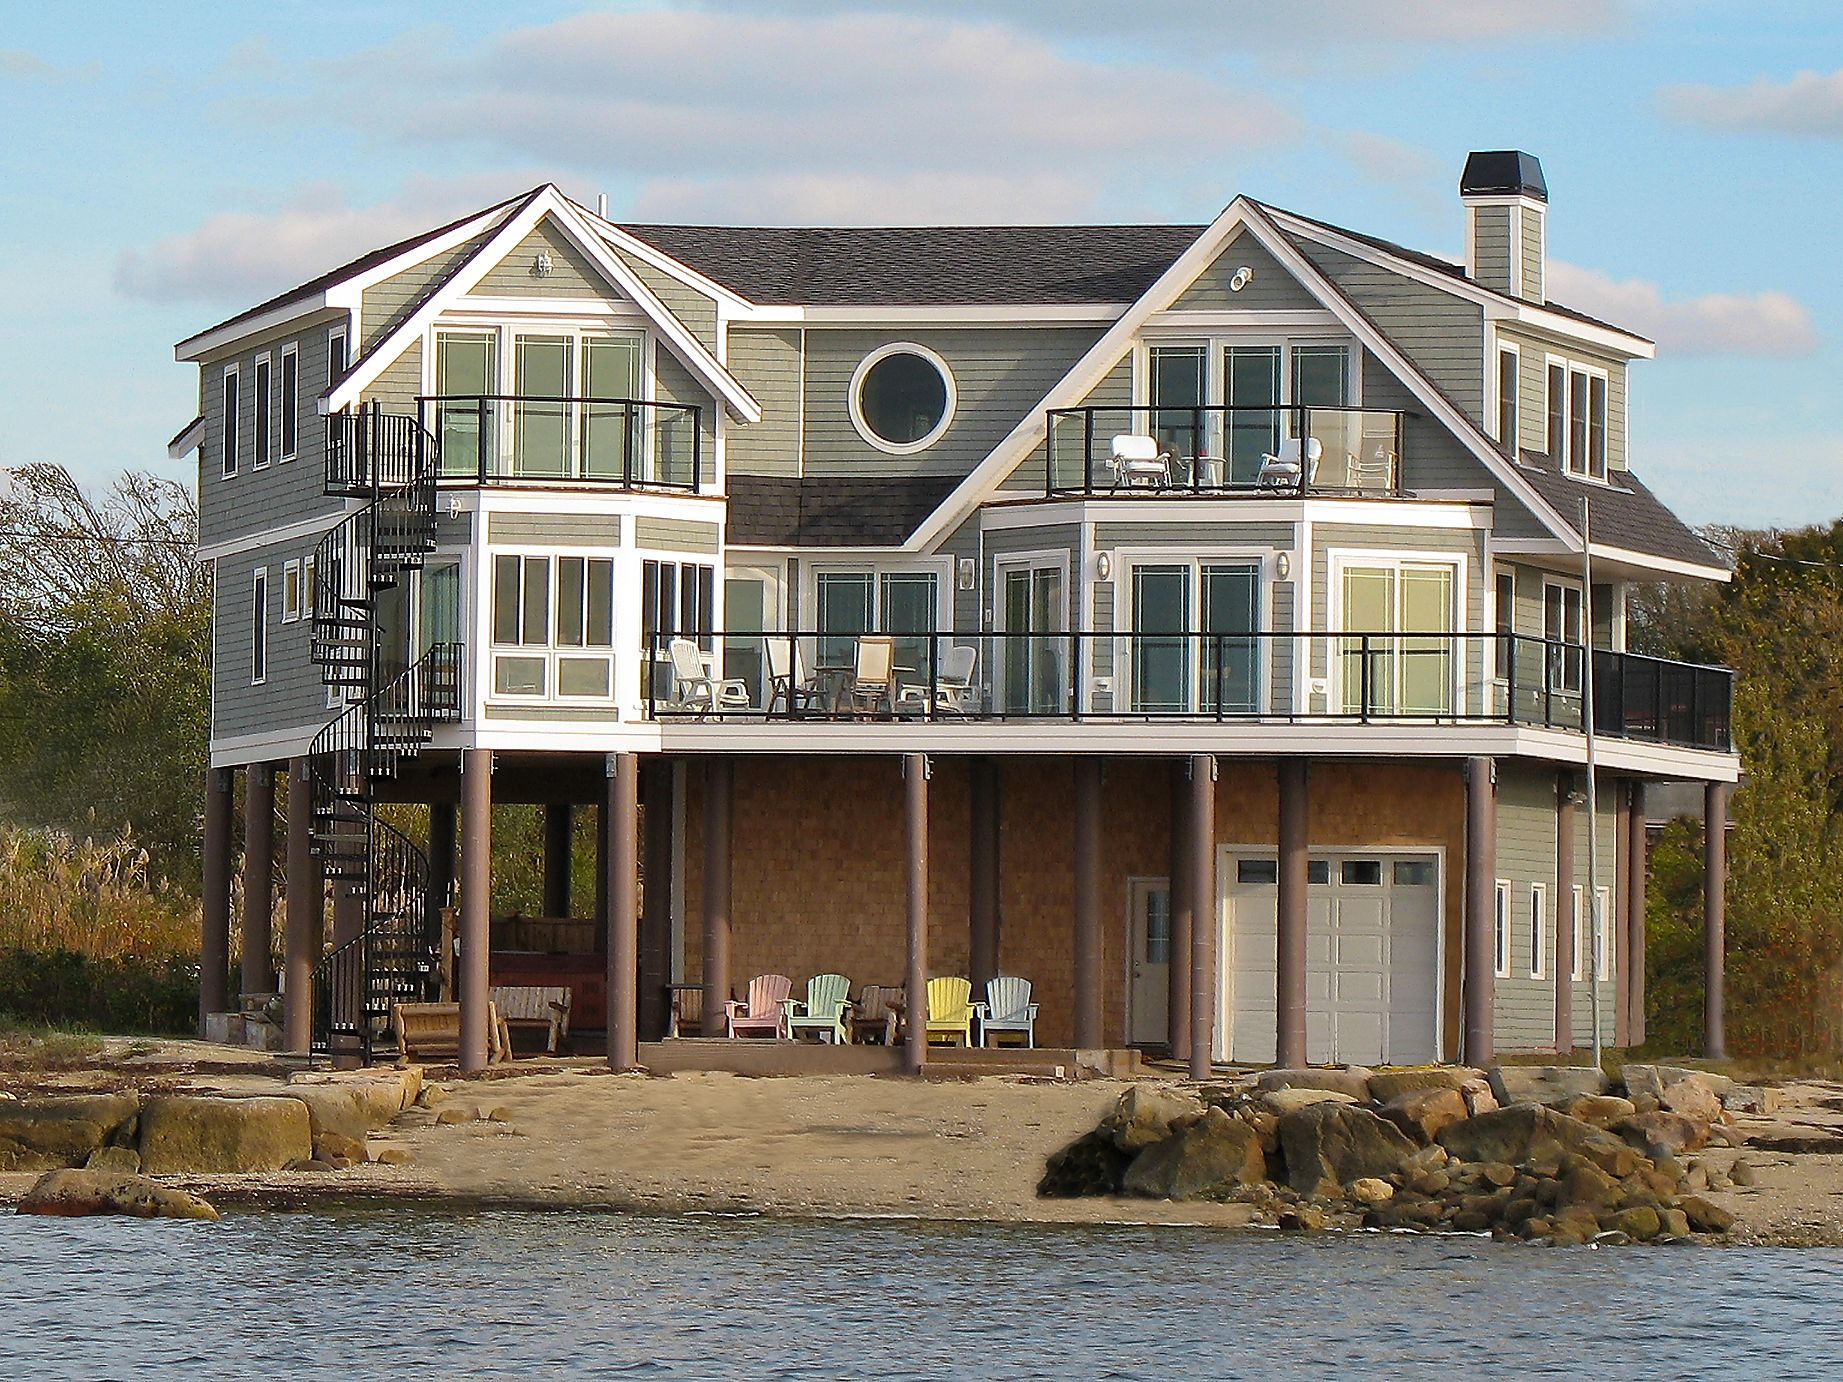 Don't risk building your new waterfront, piling foundation